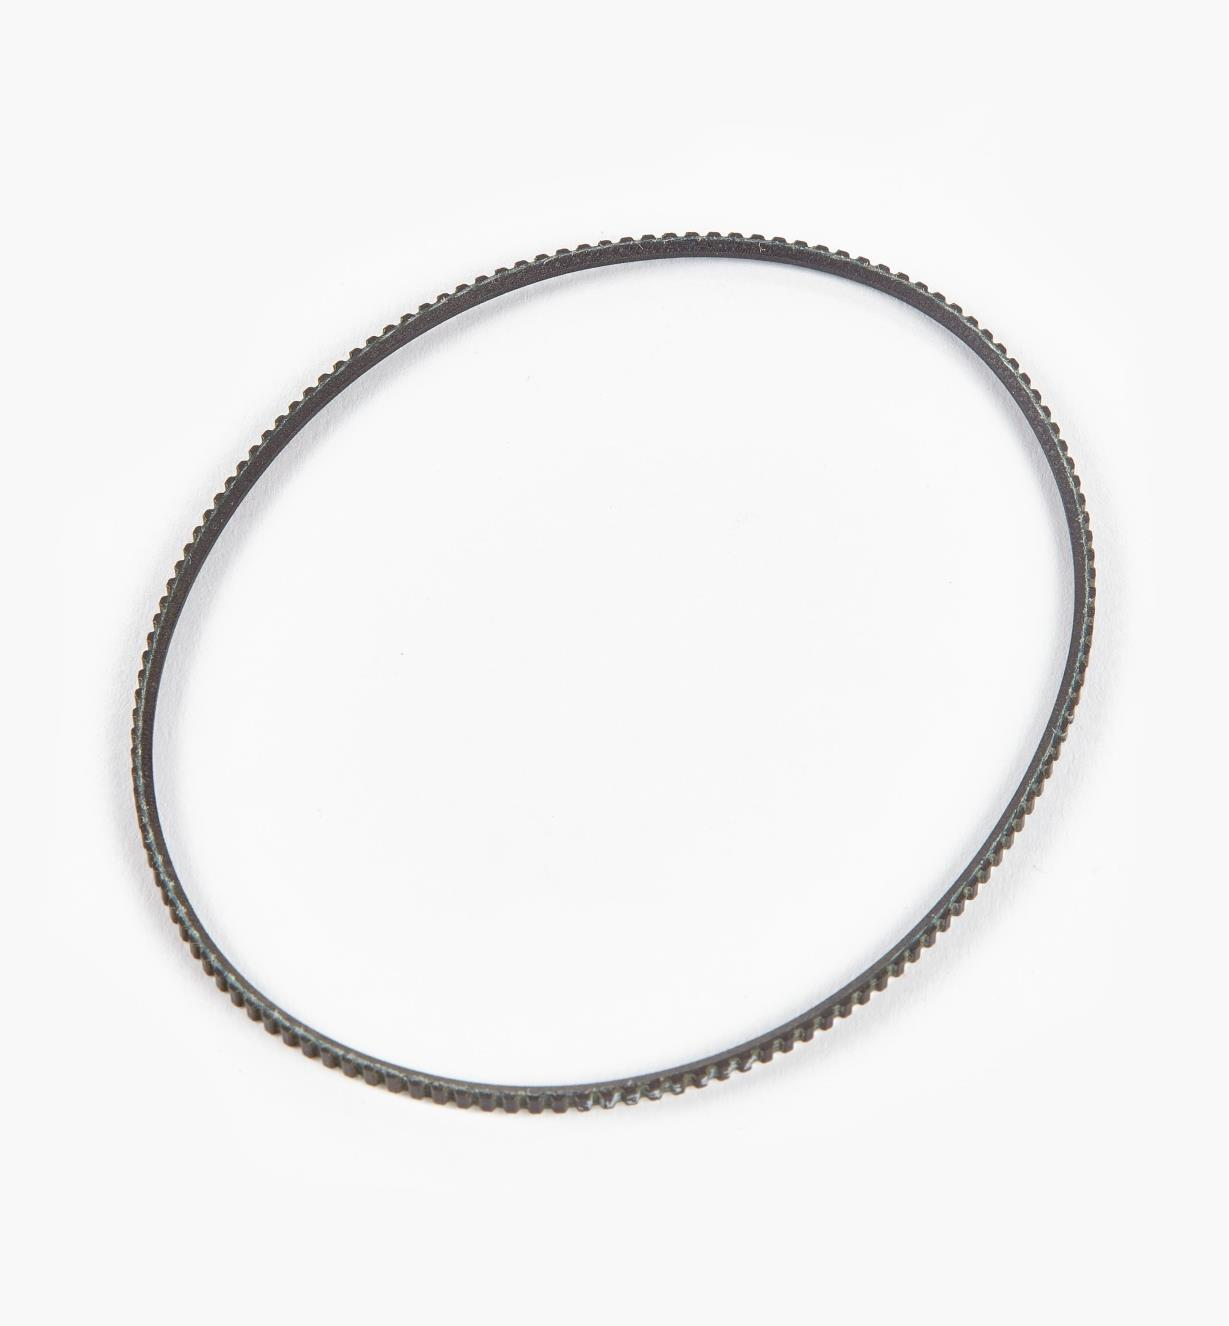 05M3104 - Replacement V-Belt, For serial number 3073 or higher